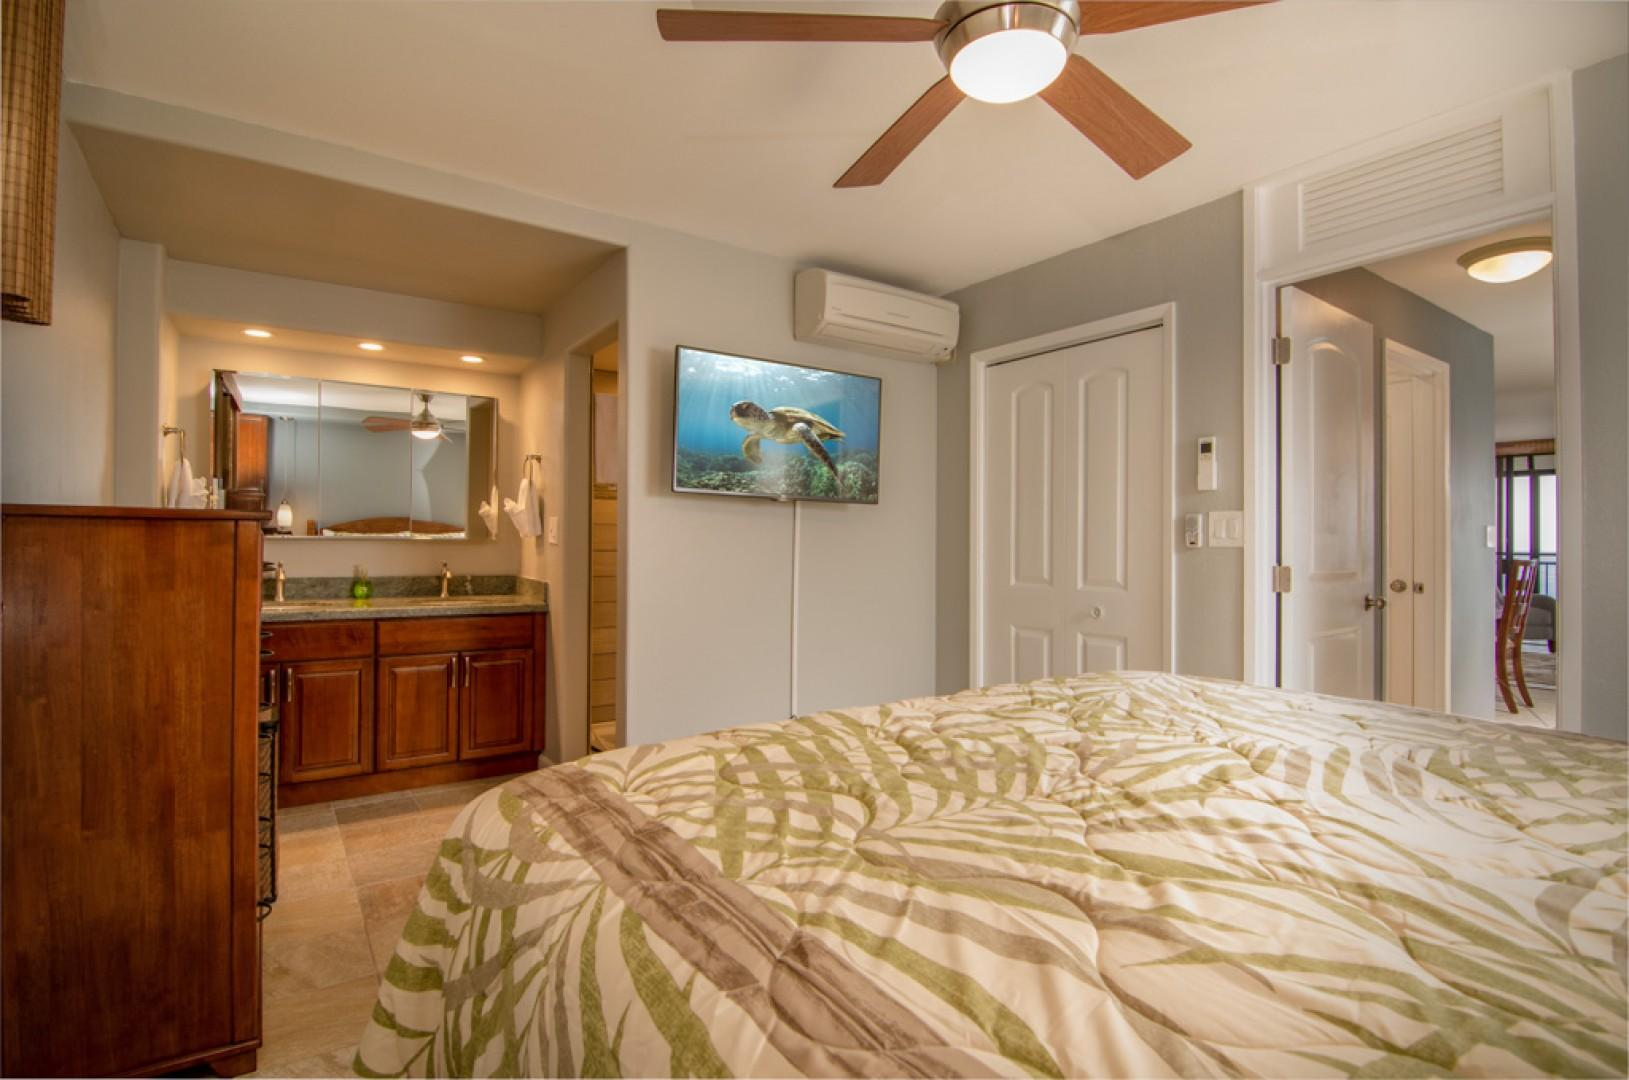 Master bedroom equipped with AC and a large flat screen TV.